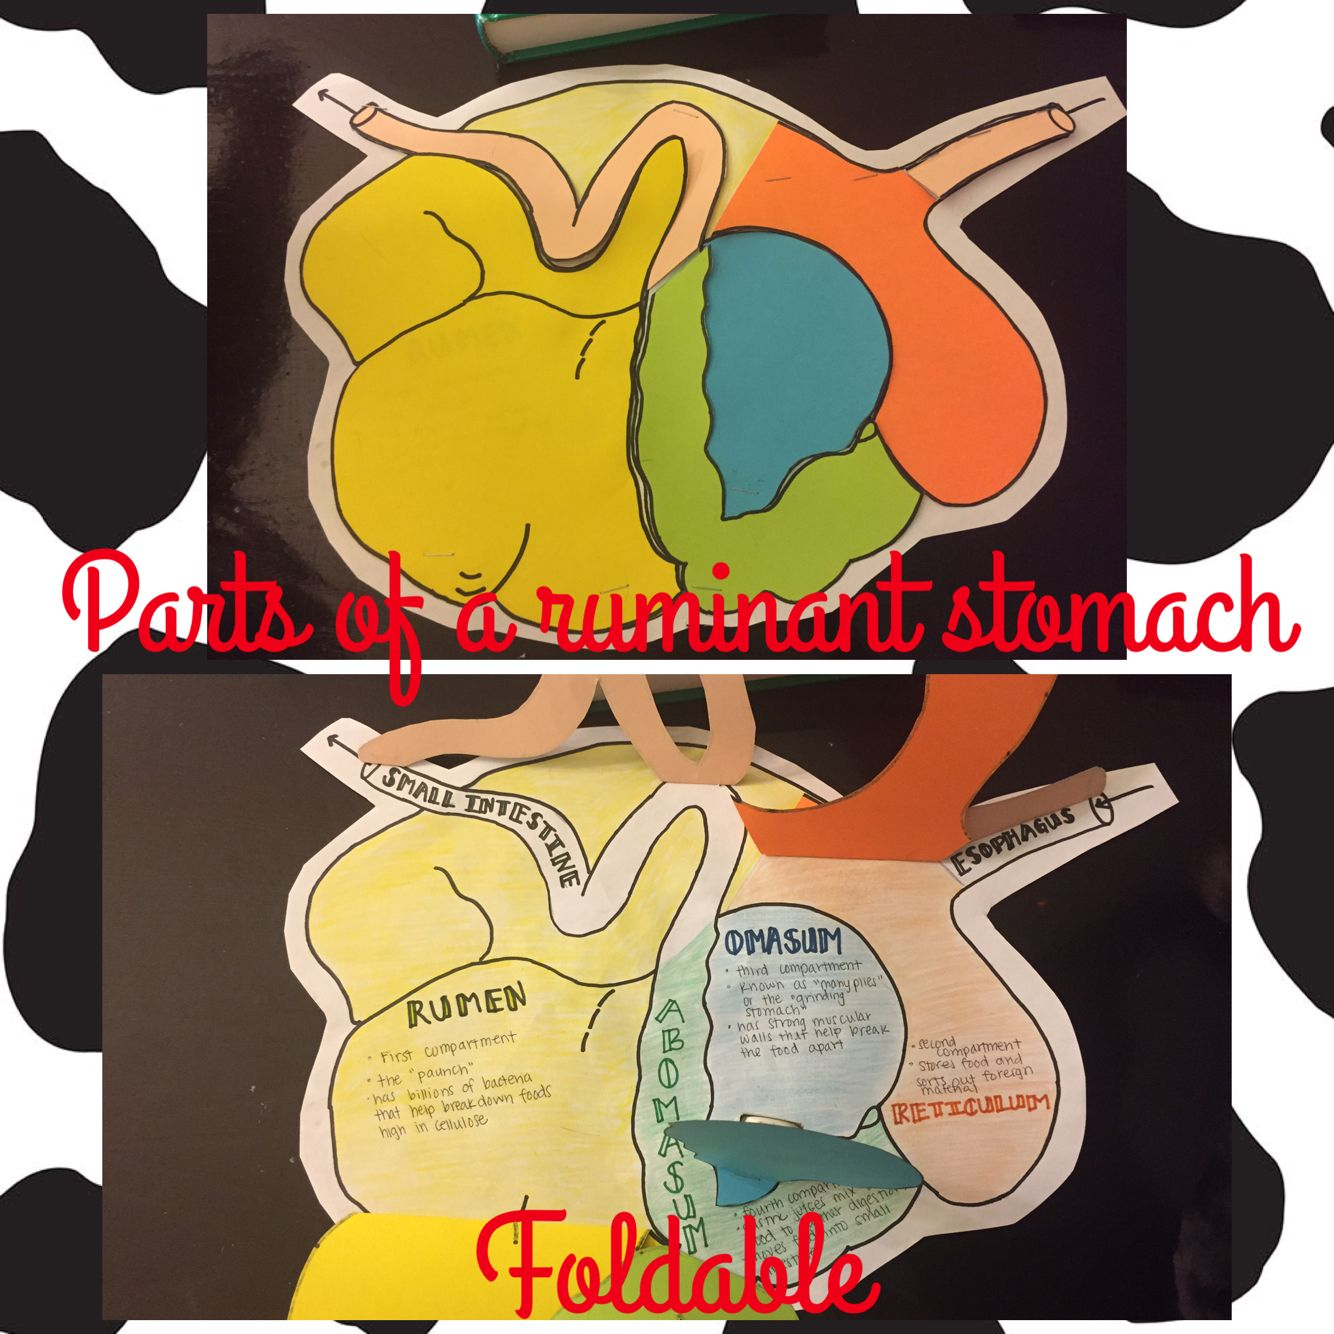 Parts Of A Ruminant Stomach Foldable